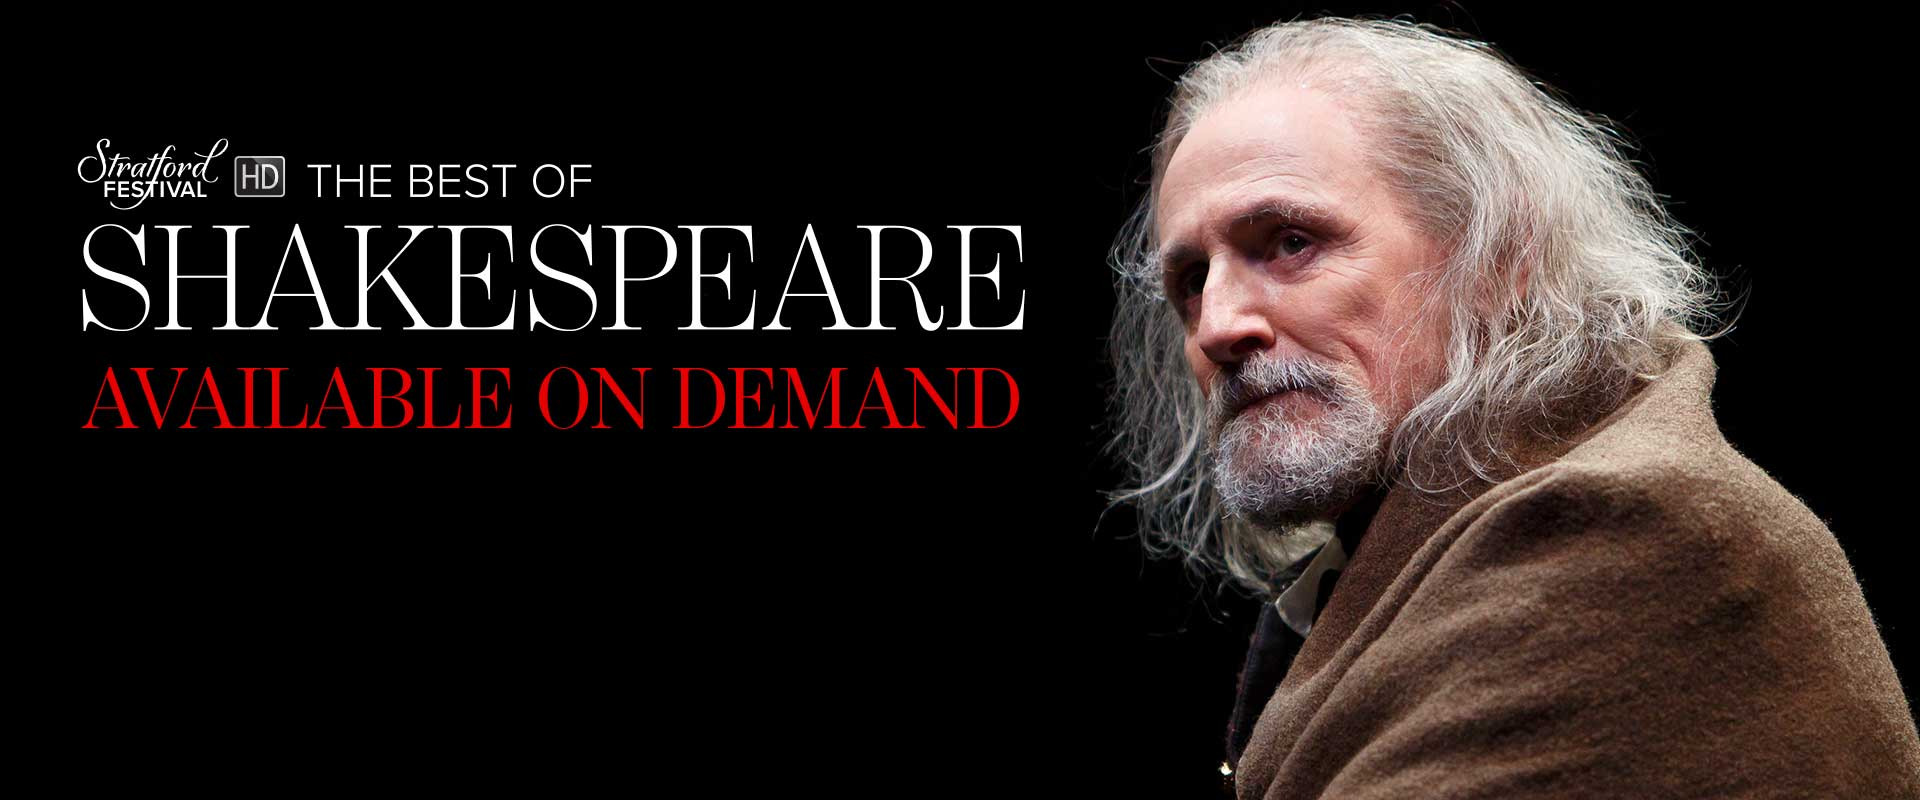 The Best of Shakespeare Available On Demand